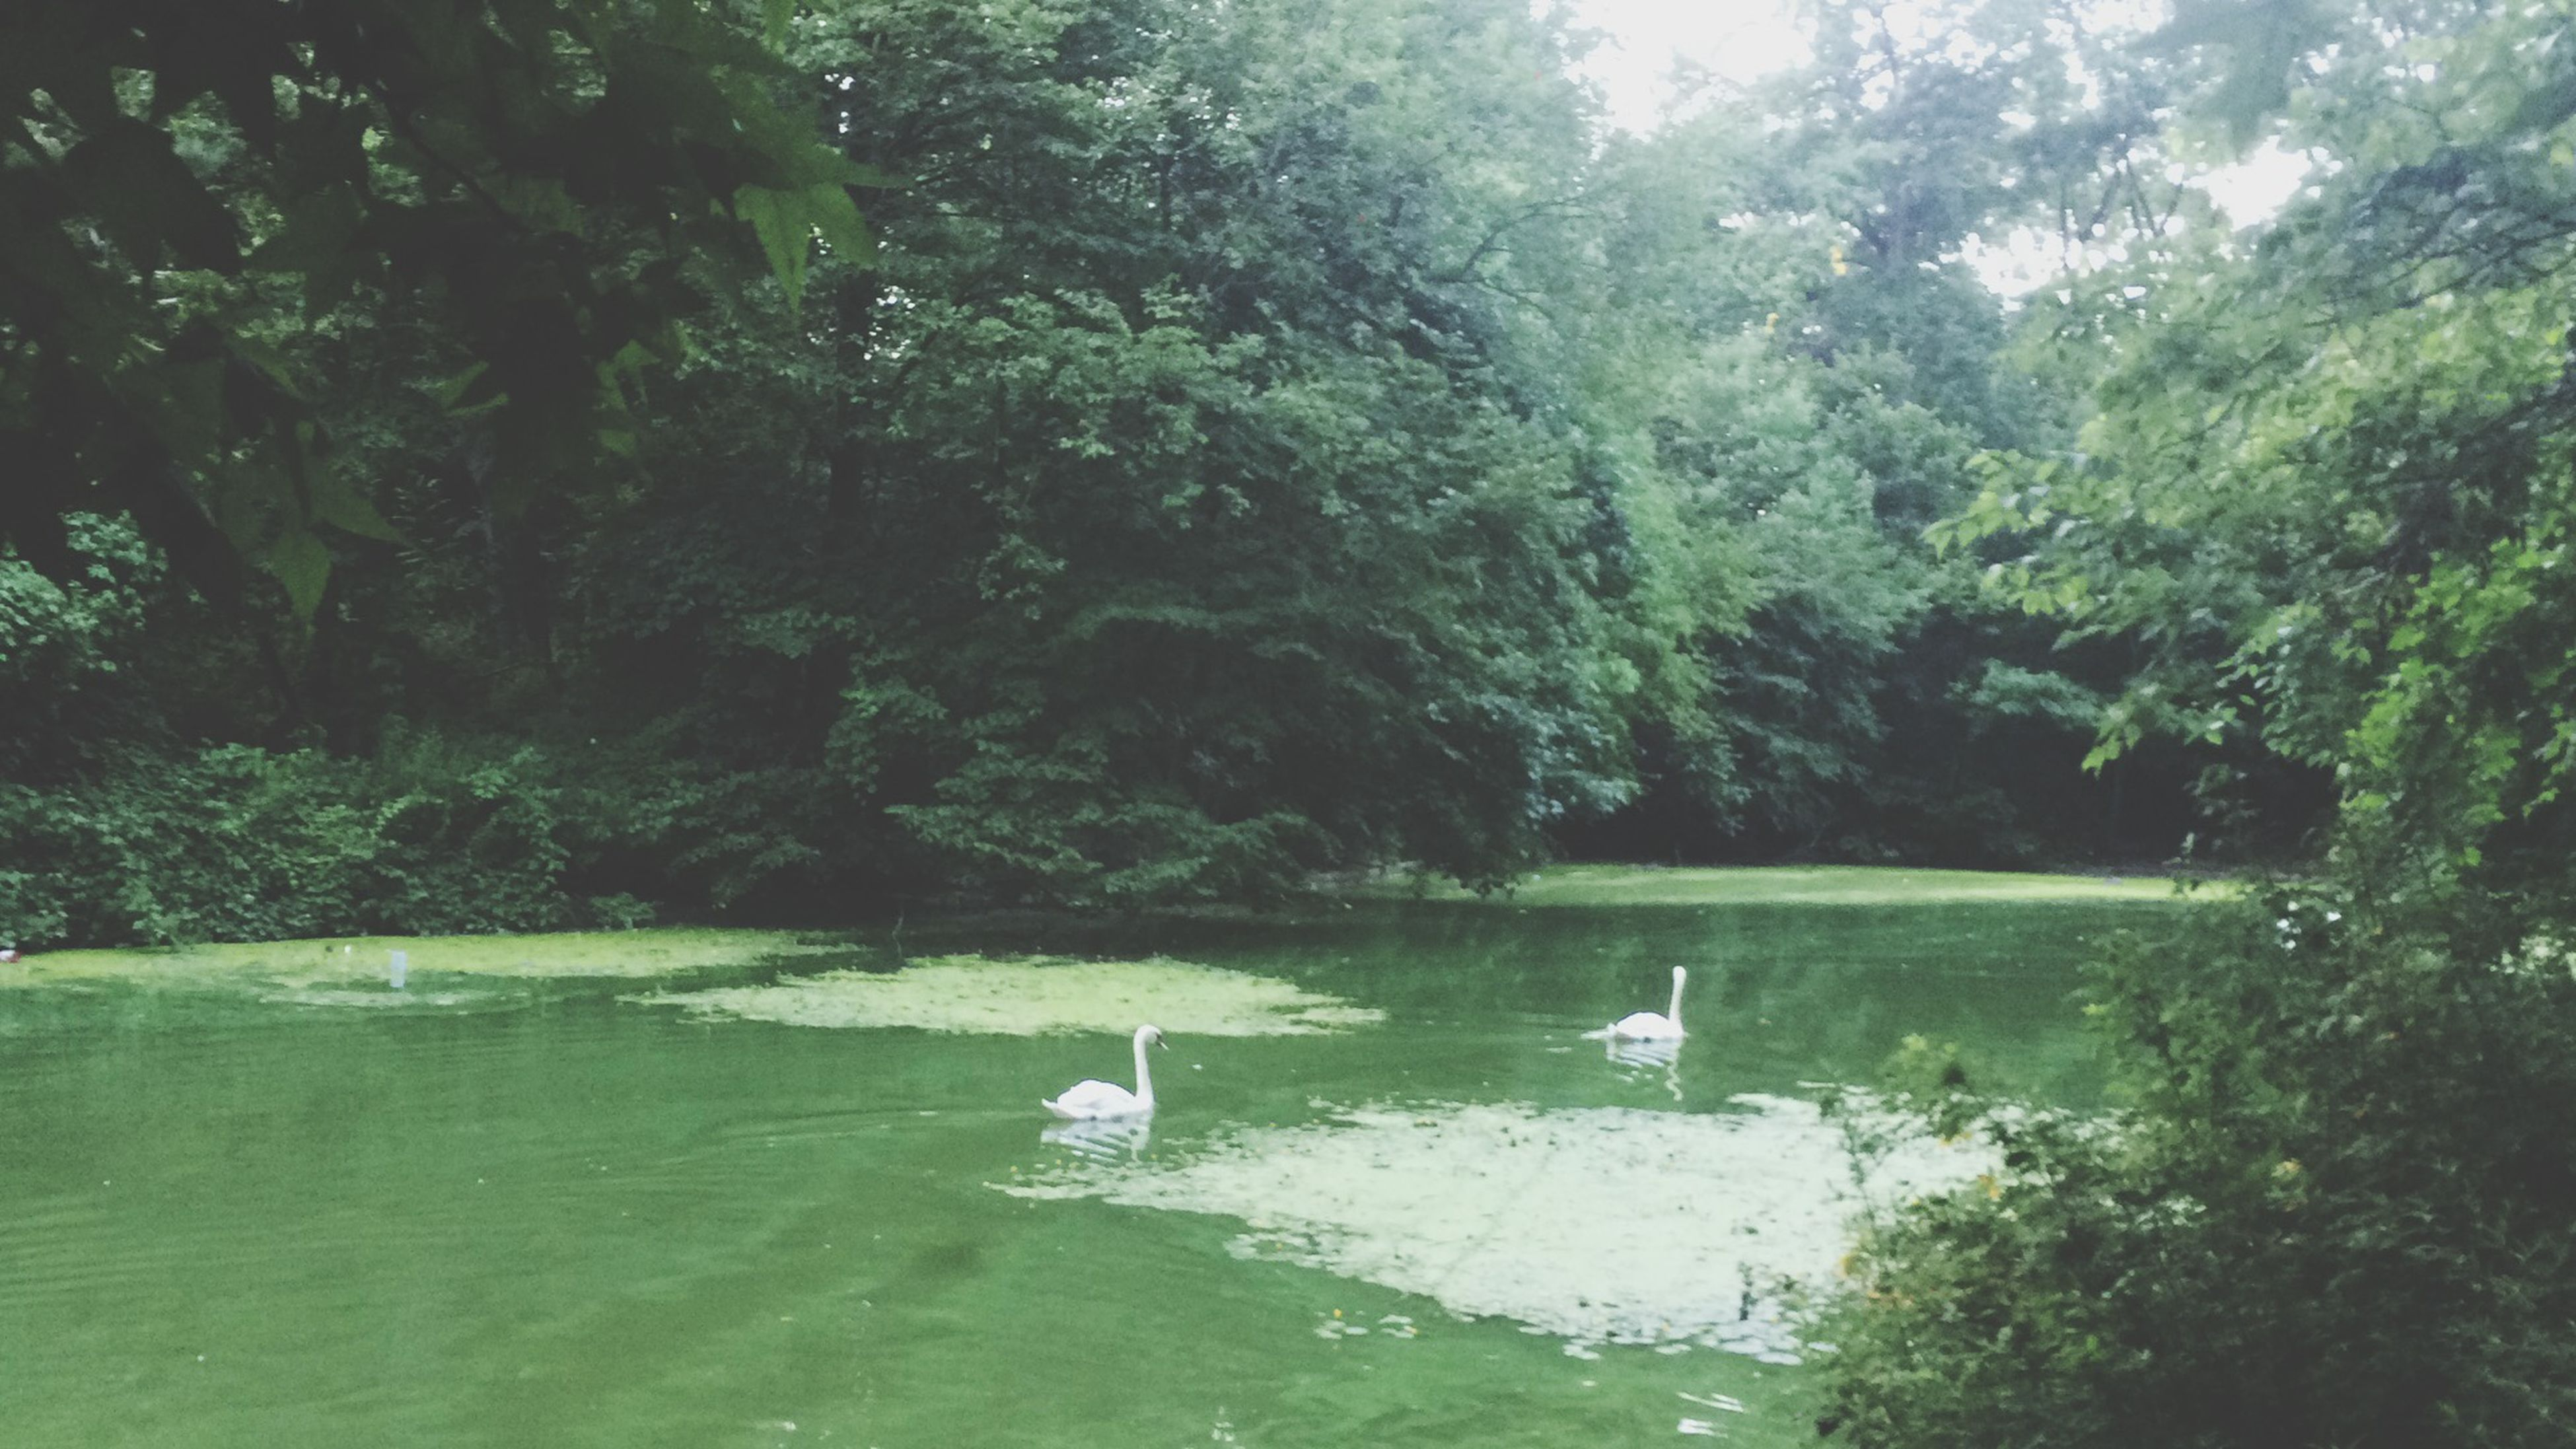 water, tree, tranquility, bird, nature, green color, lake, tranquil scene, animal themes, beauty in nature, animals in the wild, waterfront, wildlife, scenics, growth, one animal, day, river, nautical vessel, outdoors